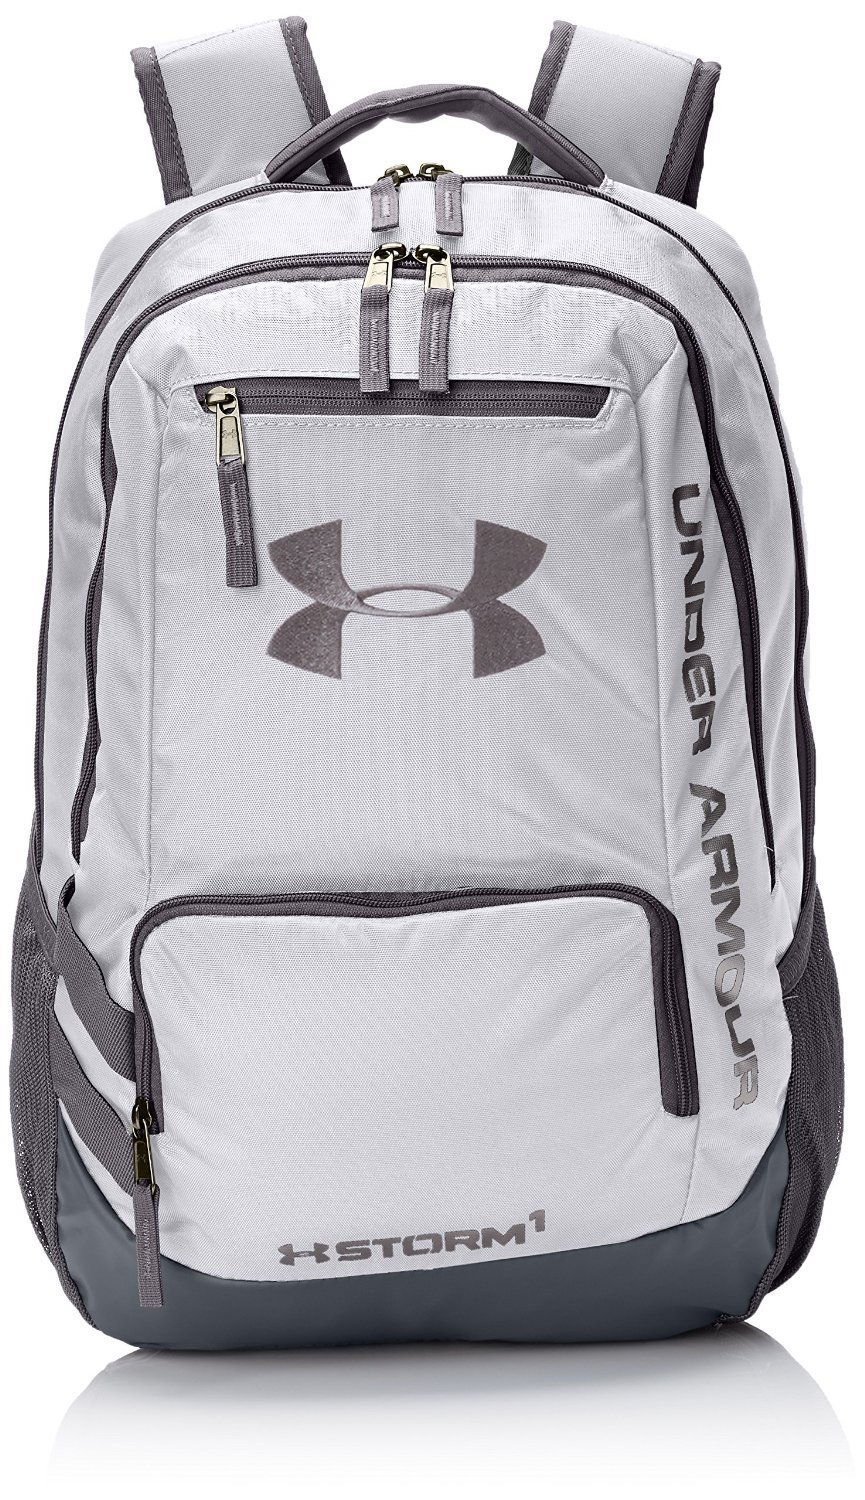 72f48cffa0da Get Quotations · Under Armour Hustle II Premium Backpack - White